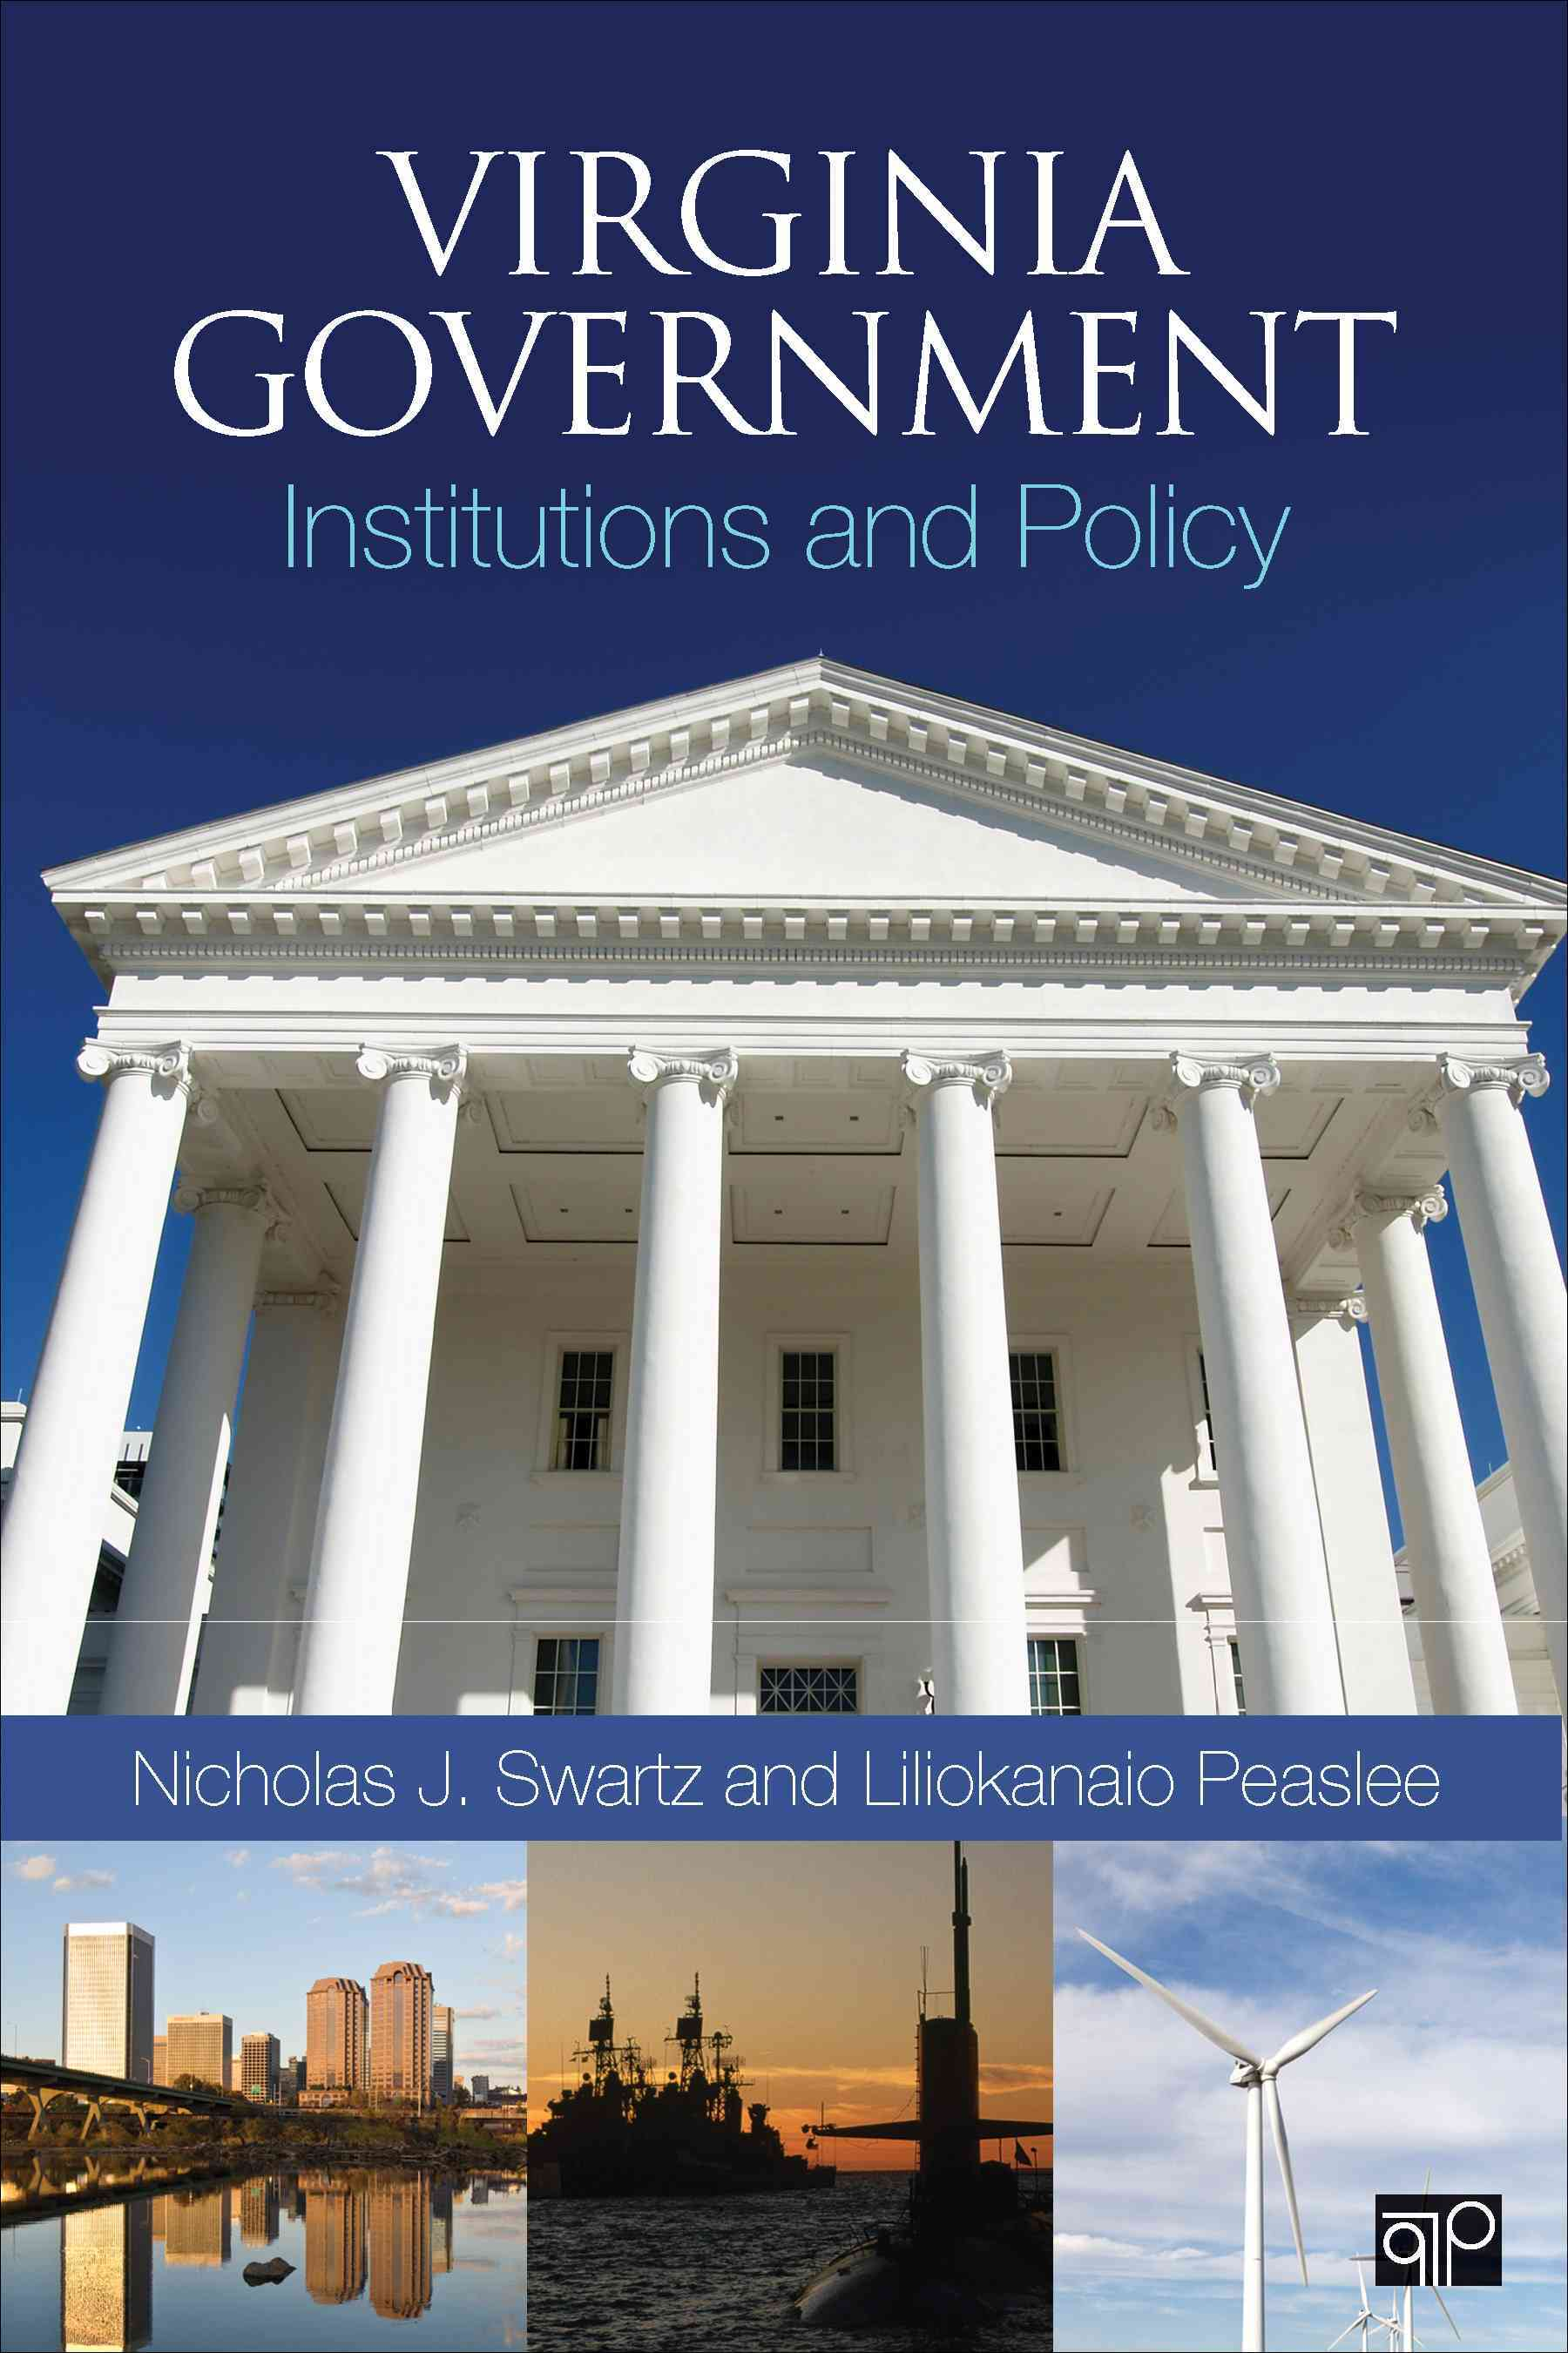 Virginia Government By Swartz, Nicholas J./ Peaslee, Liliokanaio